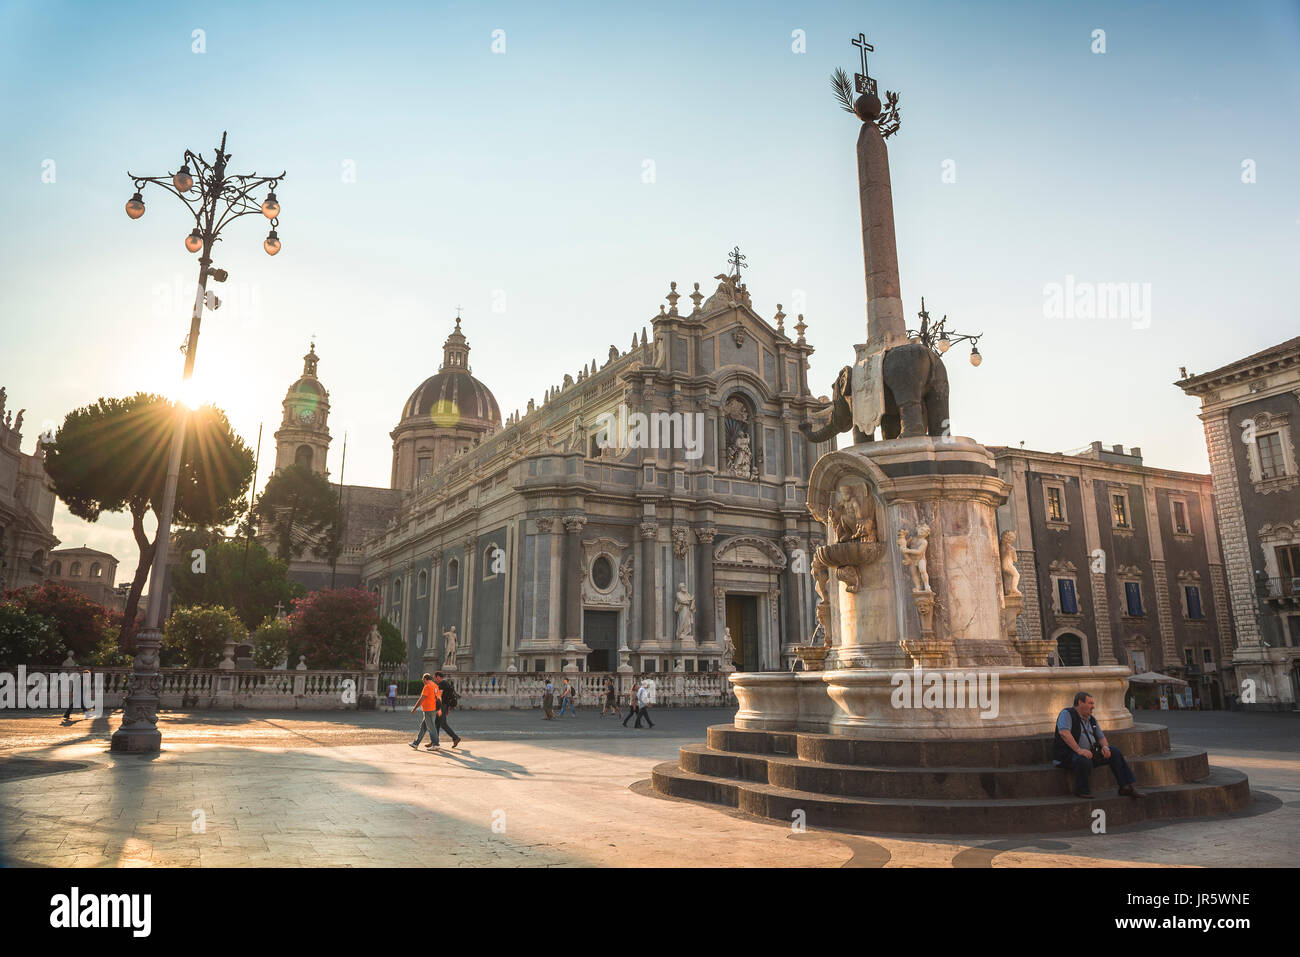 Catania Sicily piazza, the Piazza del Duomo with the elephant fountain (Fontana dell'Elefante) sited at the centre of the city of Catania, Sicily. - Stock Image